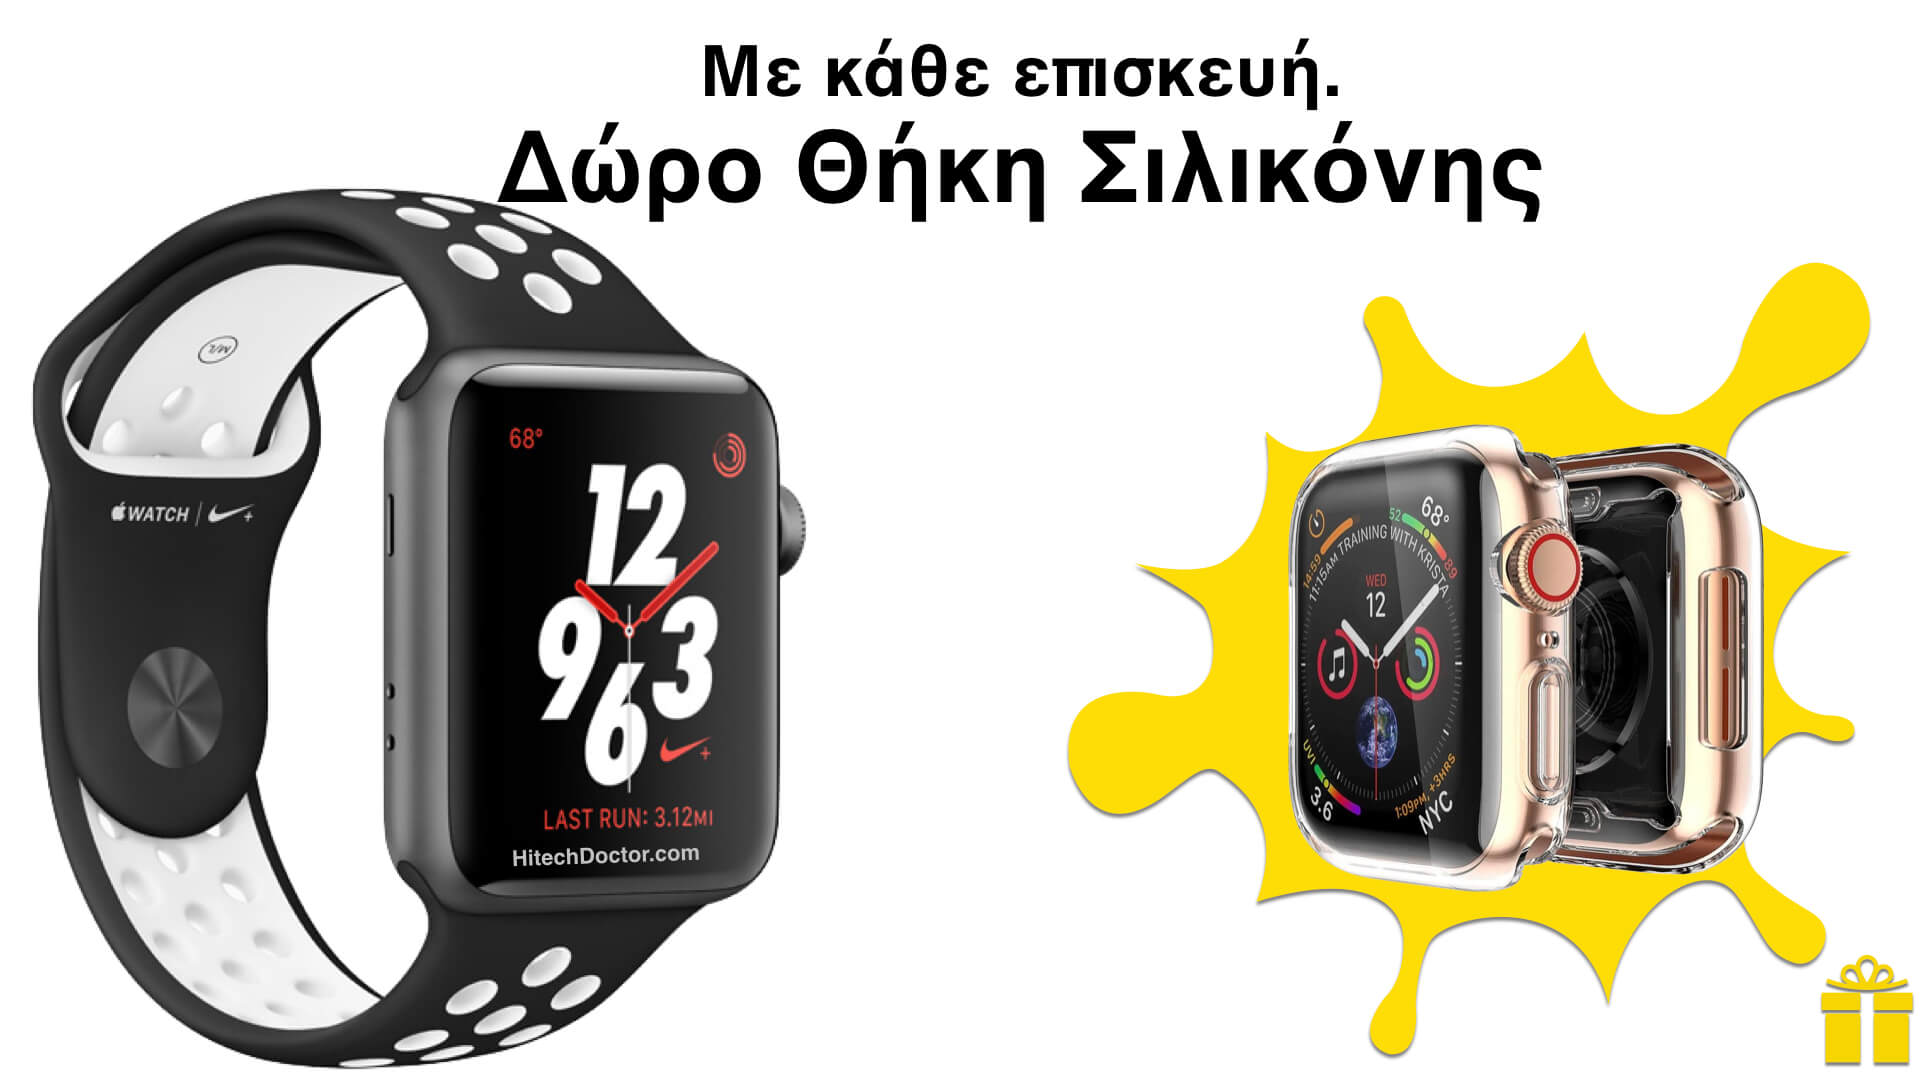 Service | Επισκευή οθόνης Apple Watch S4 - HitechDoctor.com